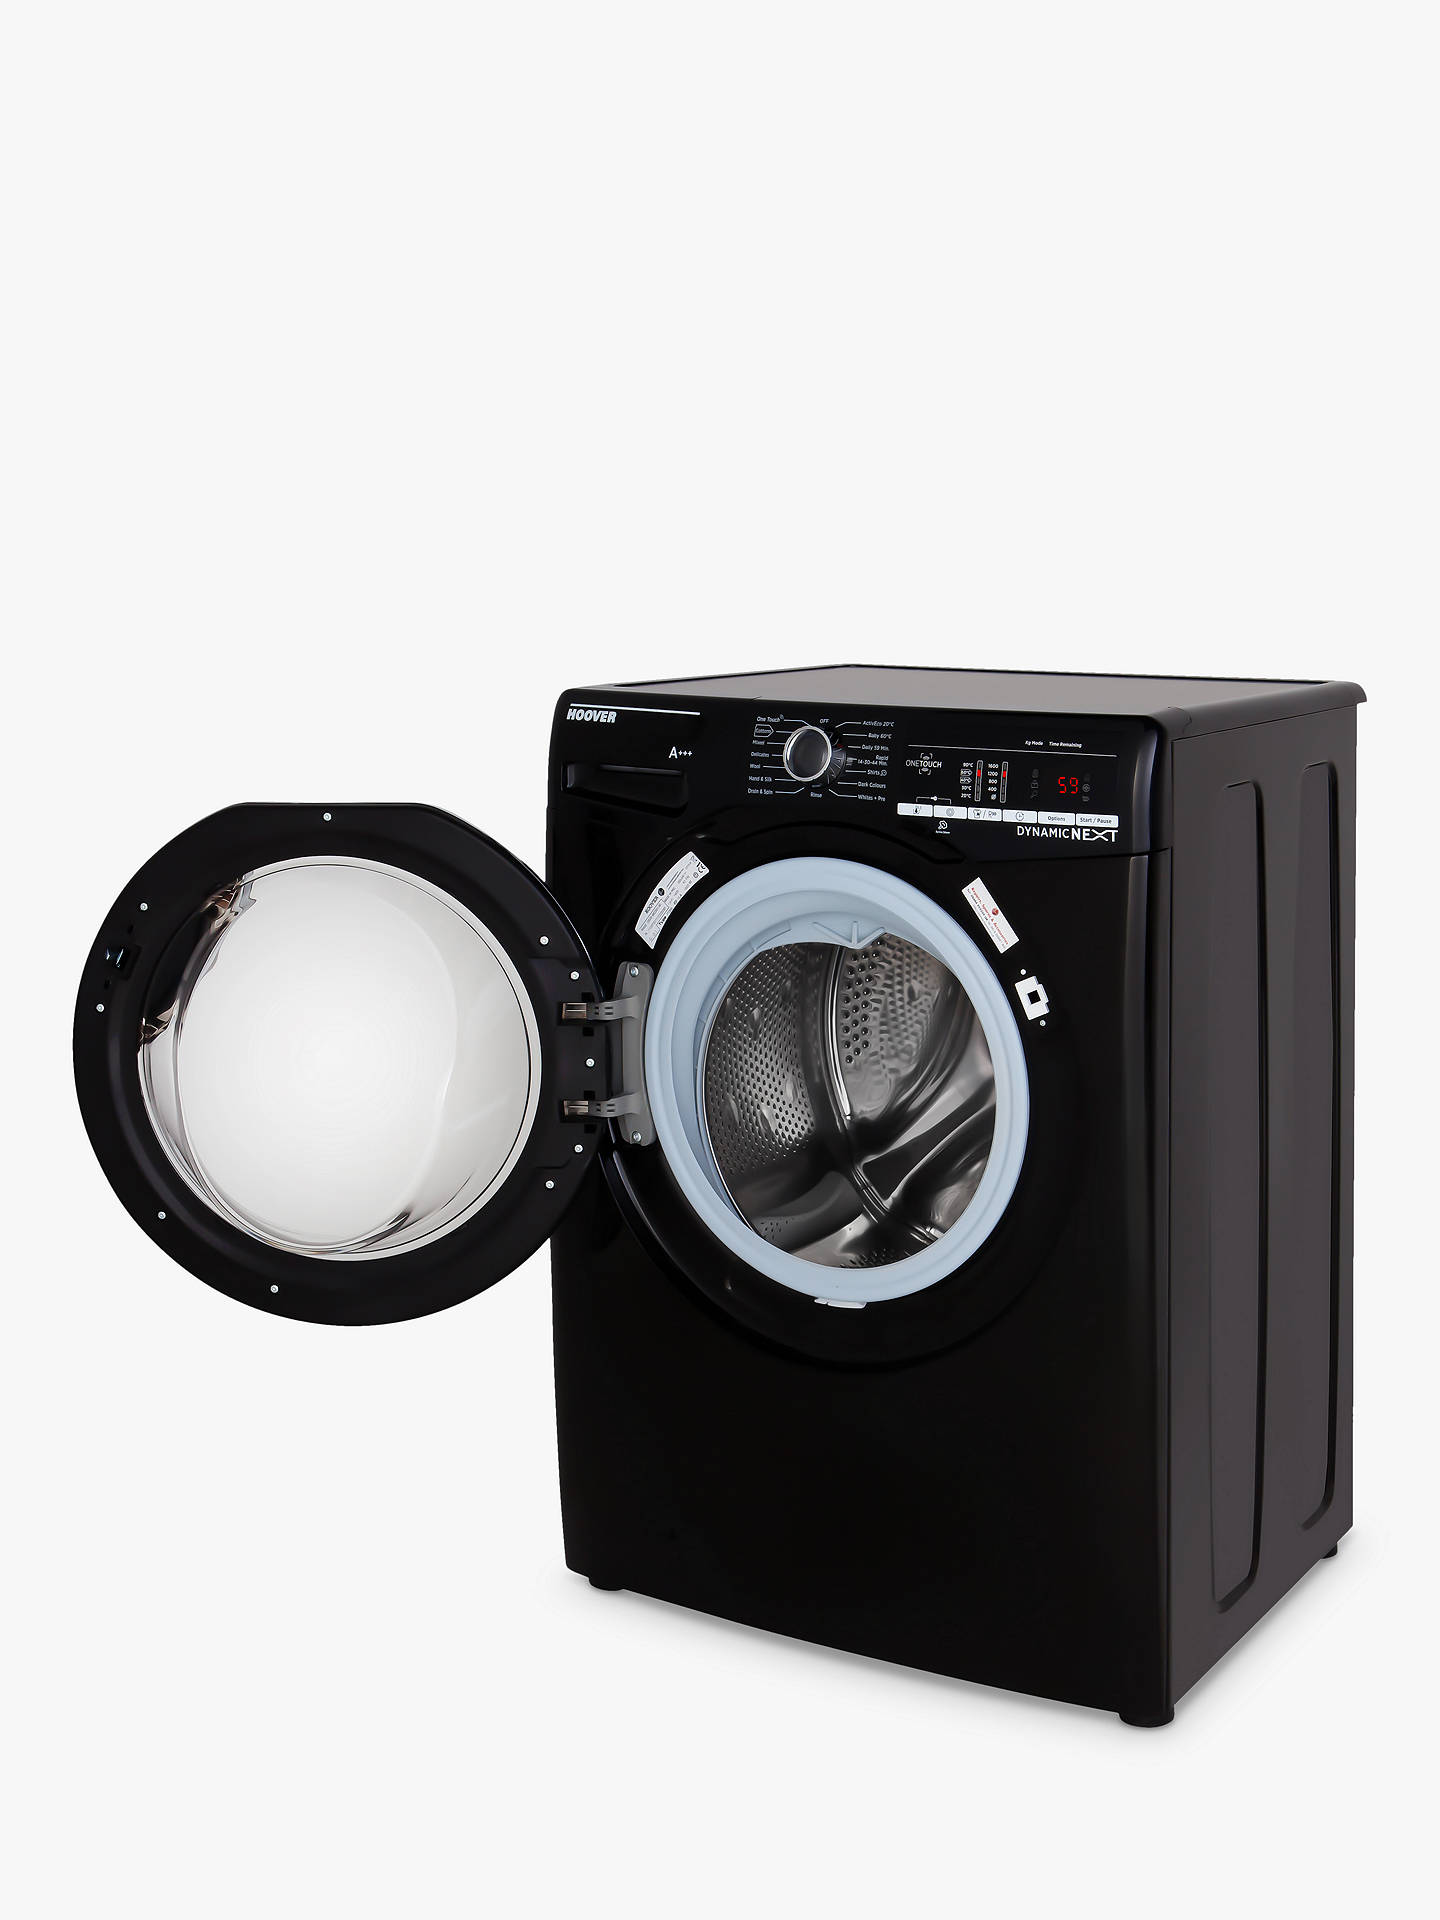 Buy Hoover DXOA68LB3B Freestanding Washing Machine, 8kg Load, A+++ Energy Rating, 1600rpm Spin, Black Online at johnlewis.com